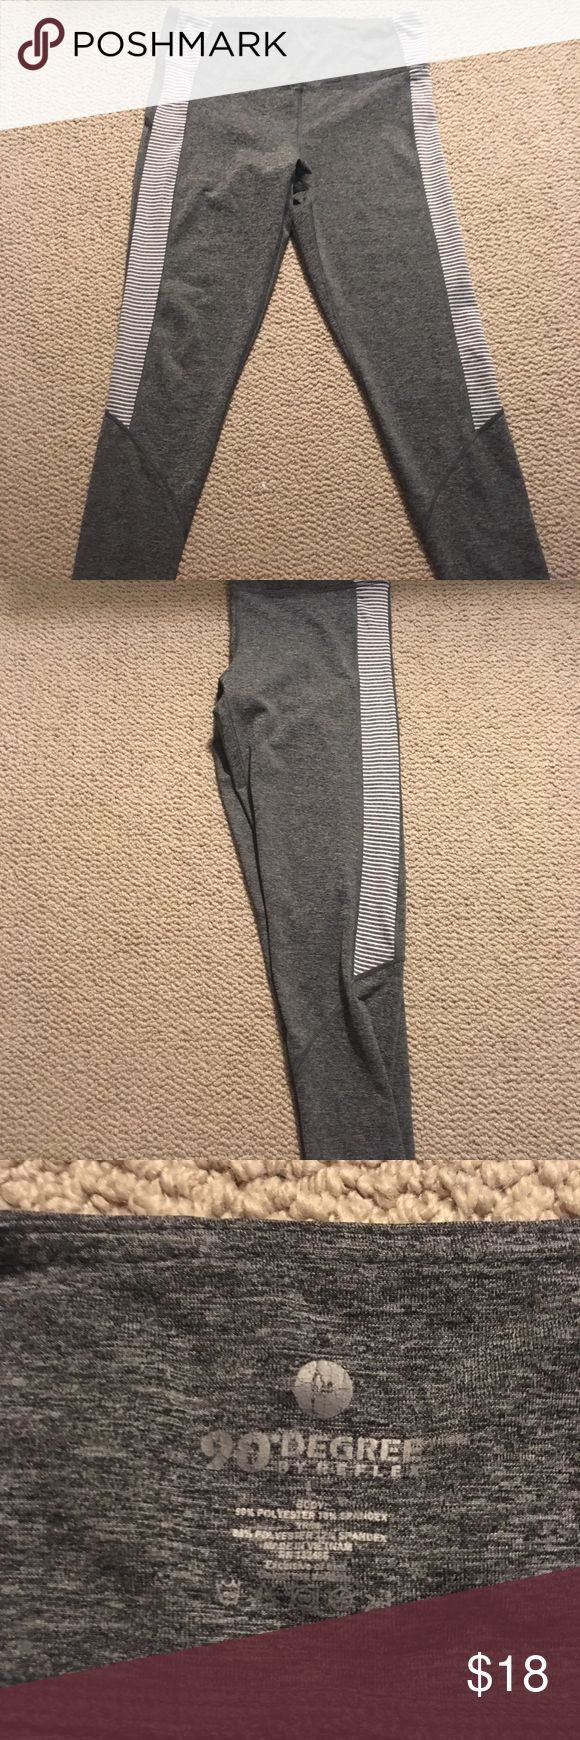 """90 degree by reflex gray and striped long leggings These flex leggings by 90 degree by reflex are stretchy and gray with light gray and white striped patterns on the side. Inseam 26"""". Perfect for yoga or barre class. Only worn a couple of times and in EUC! 90 Degree By Reflex Pants"""